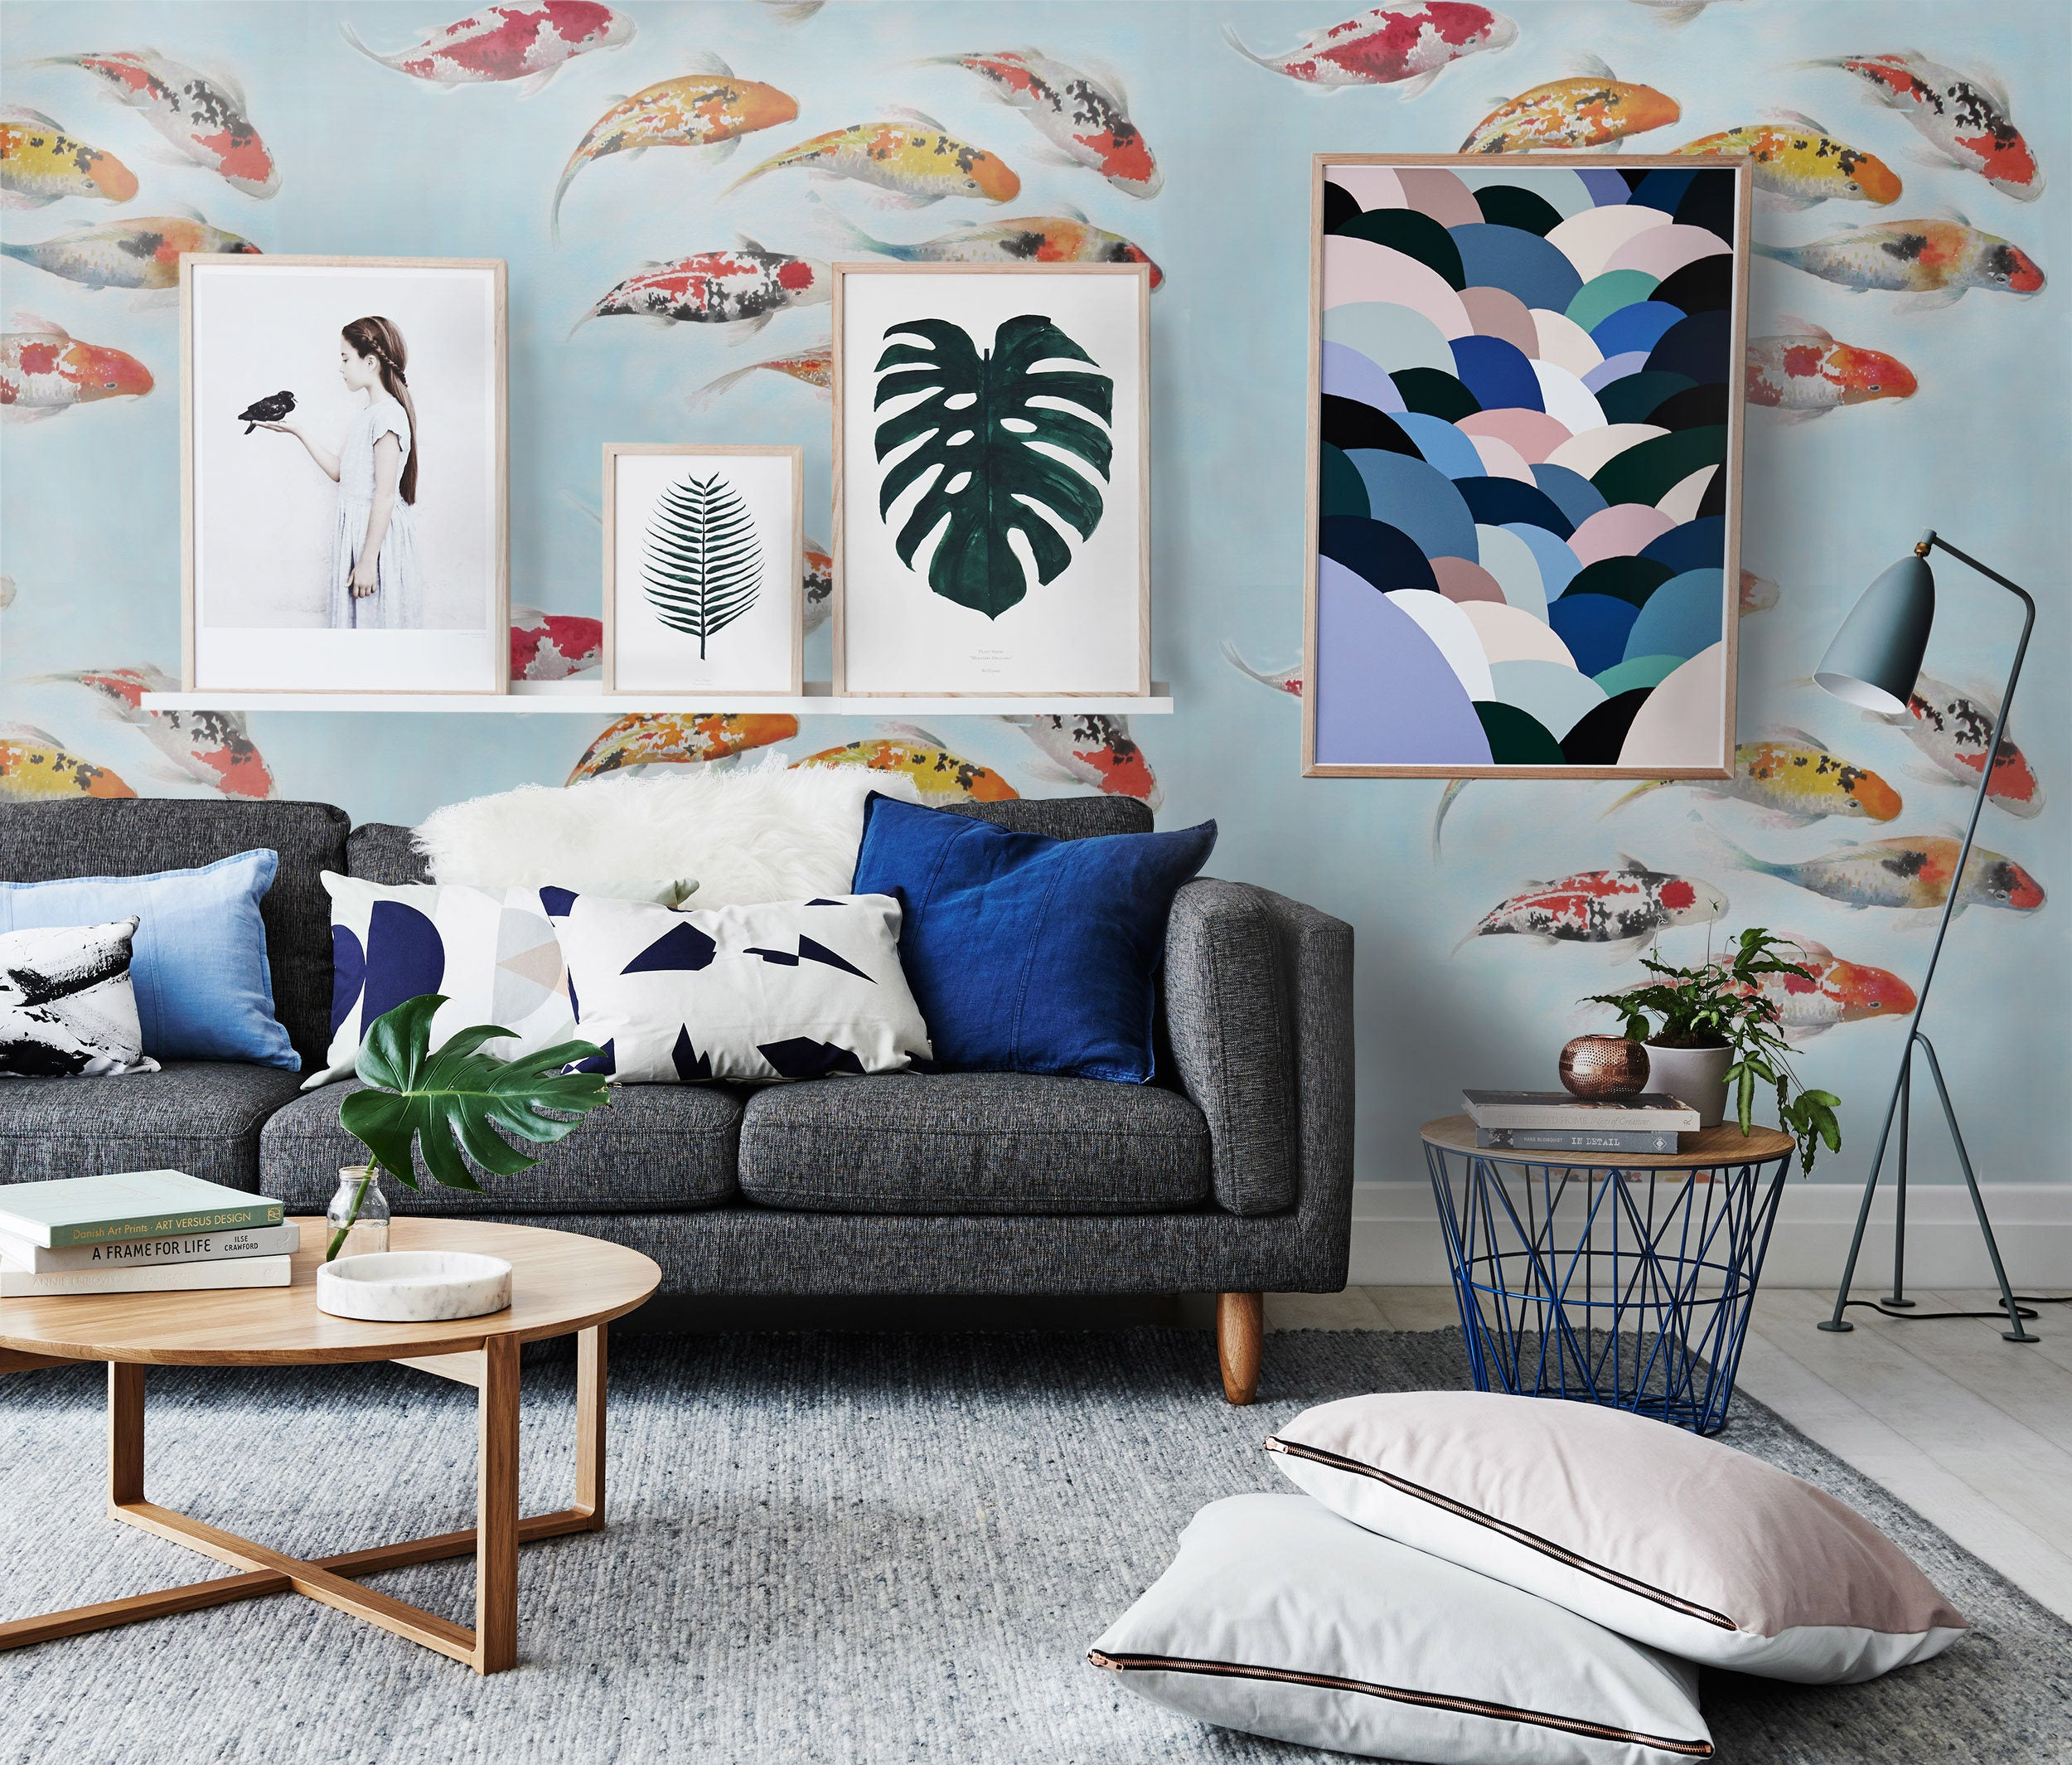 and decoration wall ideas that colors cabin seashells shells fish home your coastal an ocean like wood cottage rustic love decorate ukrasheniya trout capture the of decor starfish beach anchors info icons with